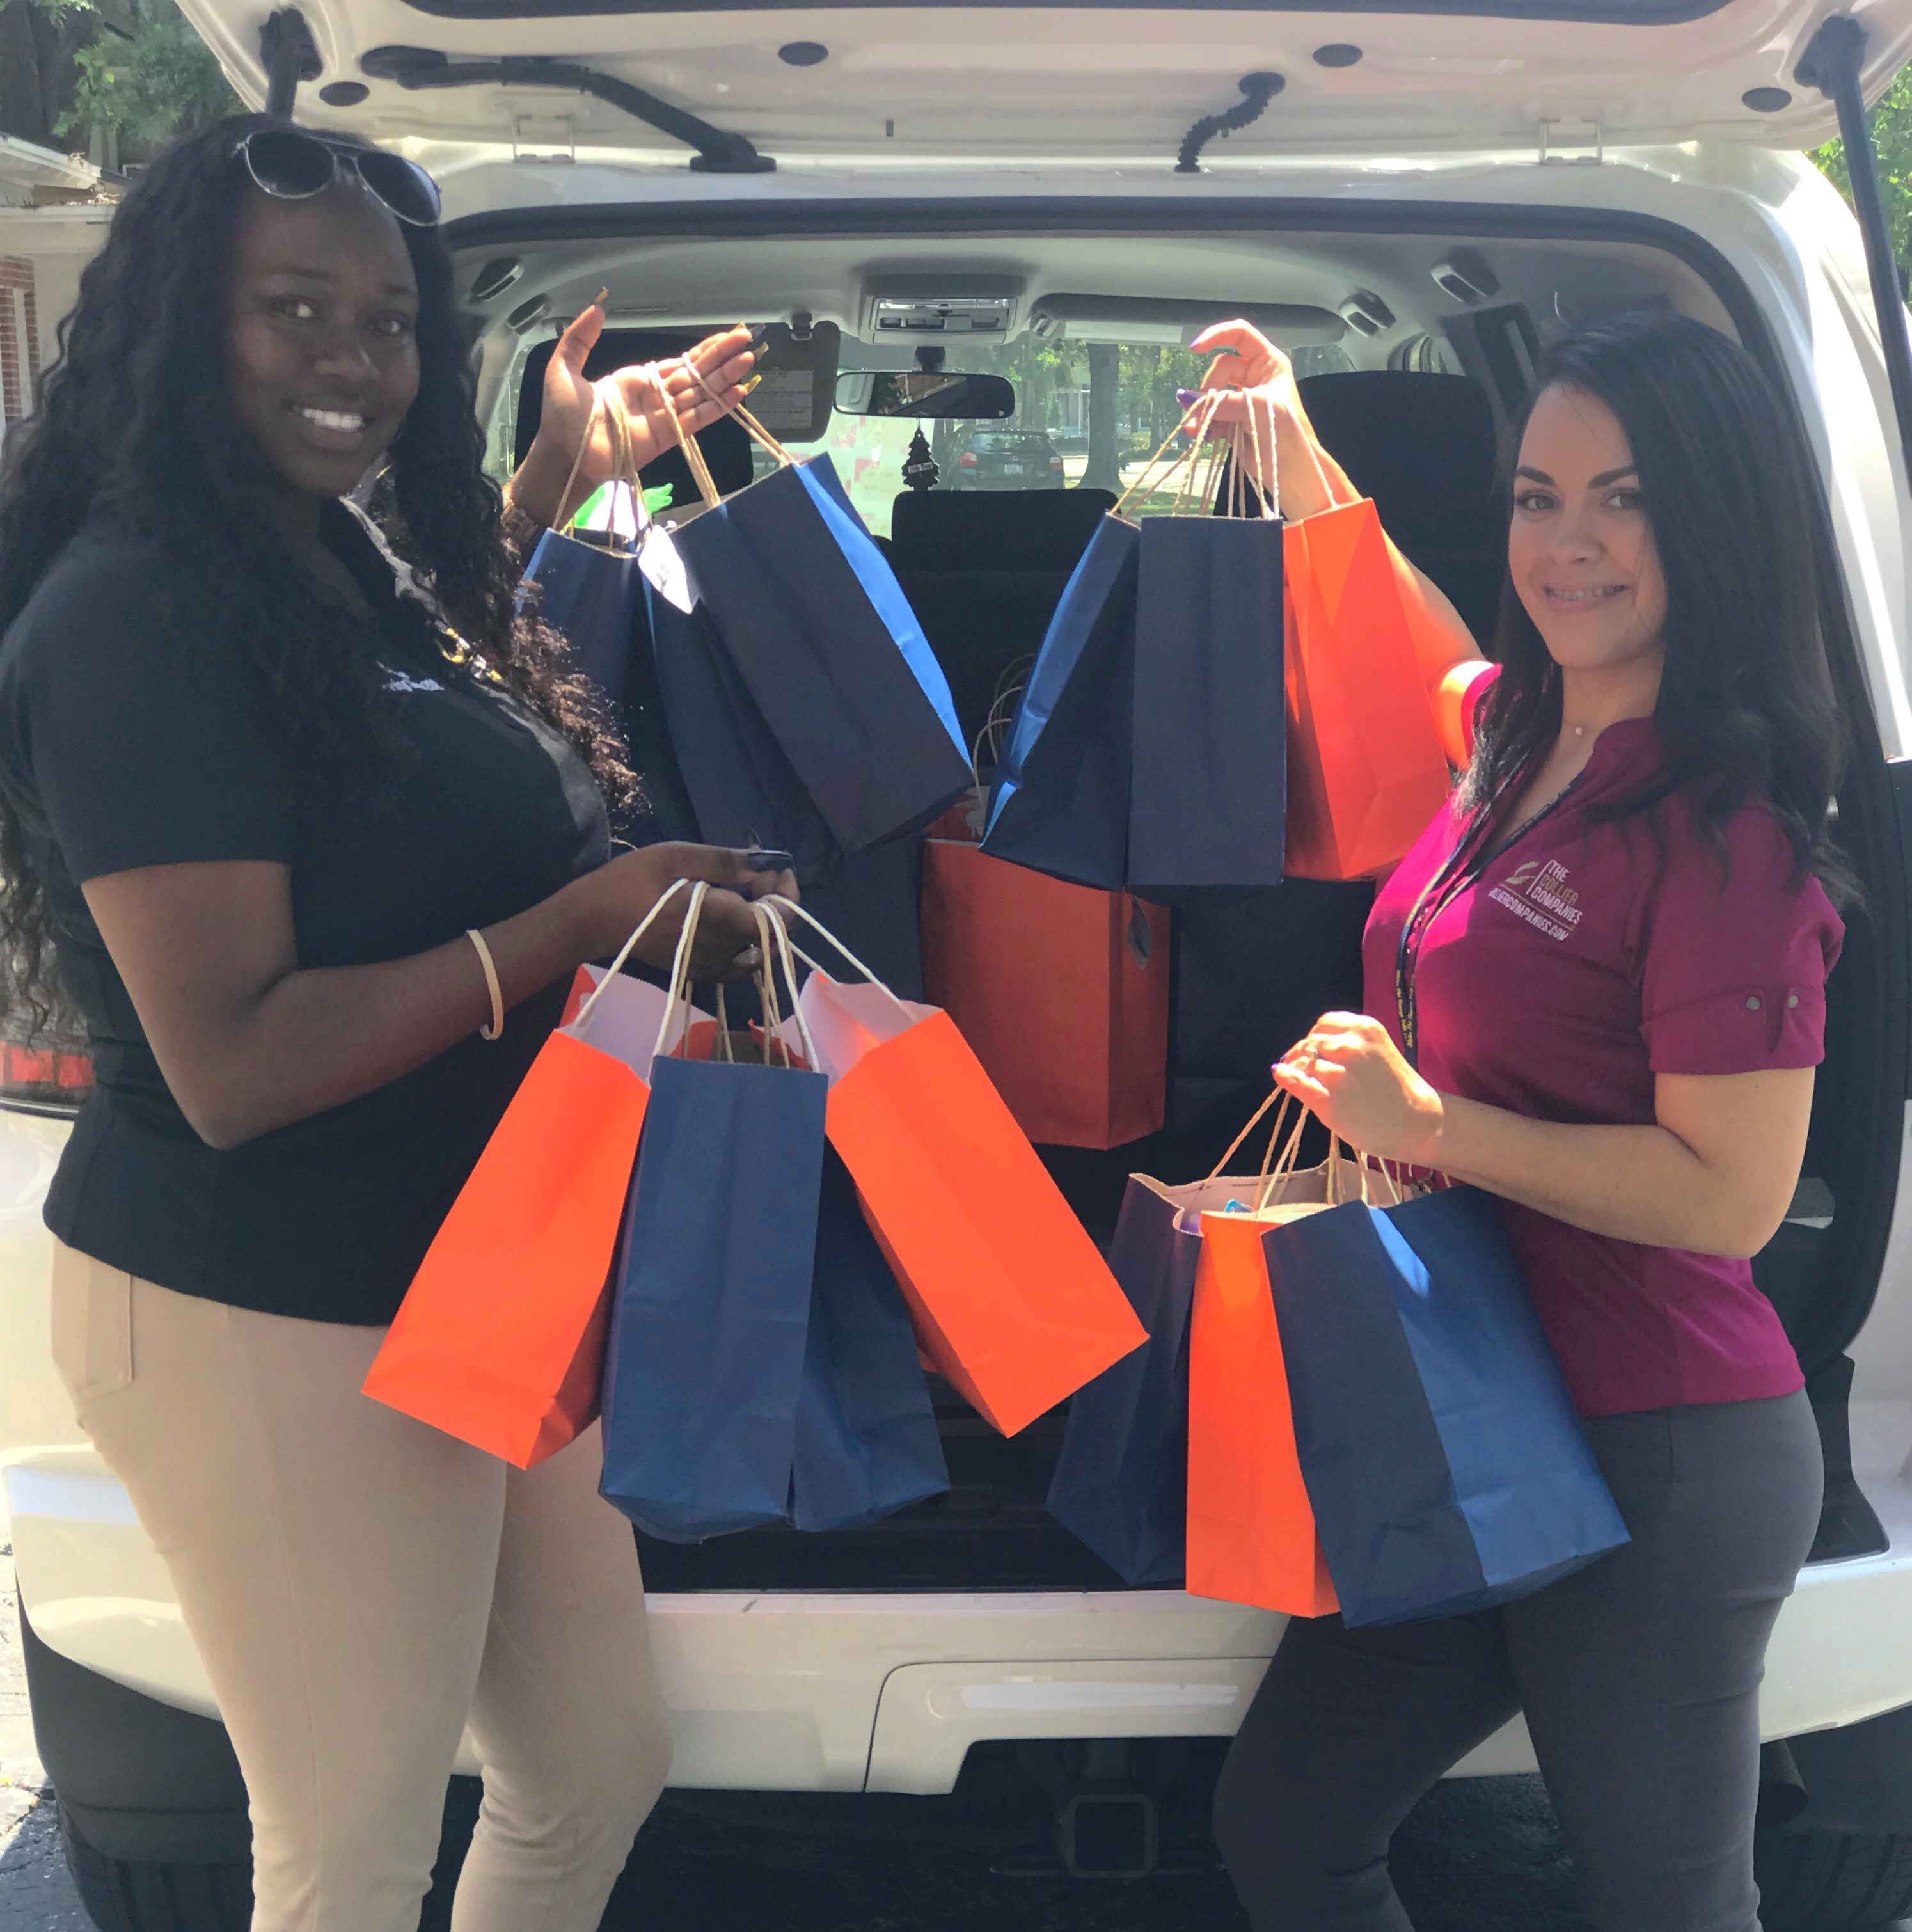 Collier employees showcasing orange and blue bags of promotional items.